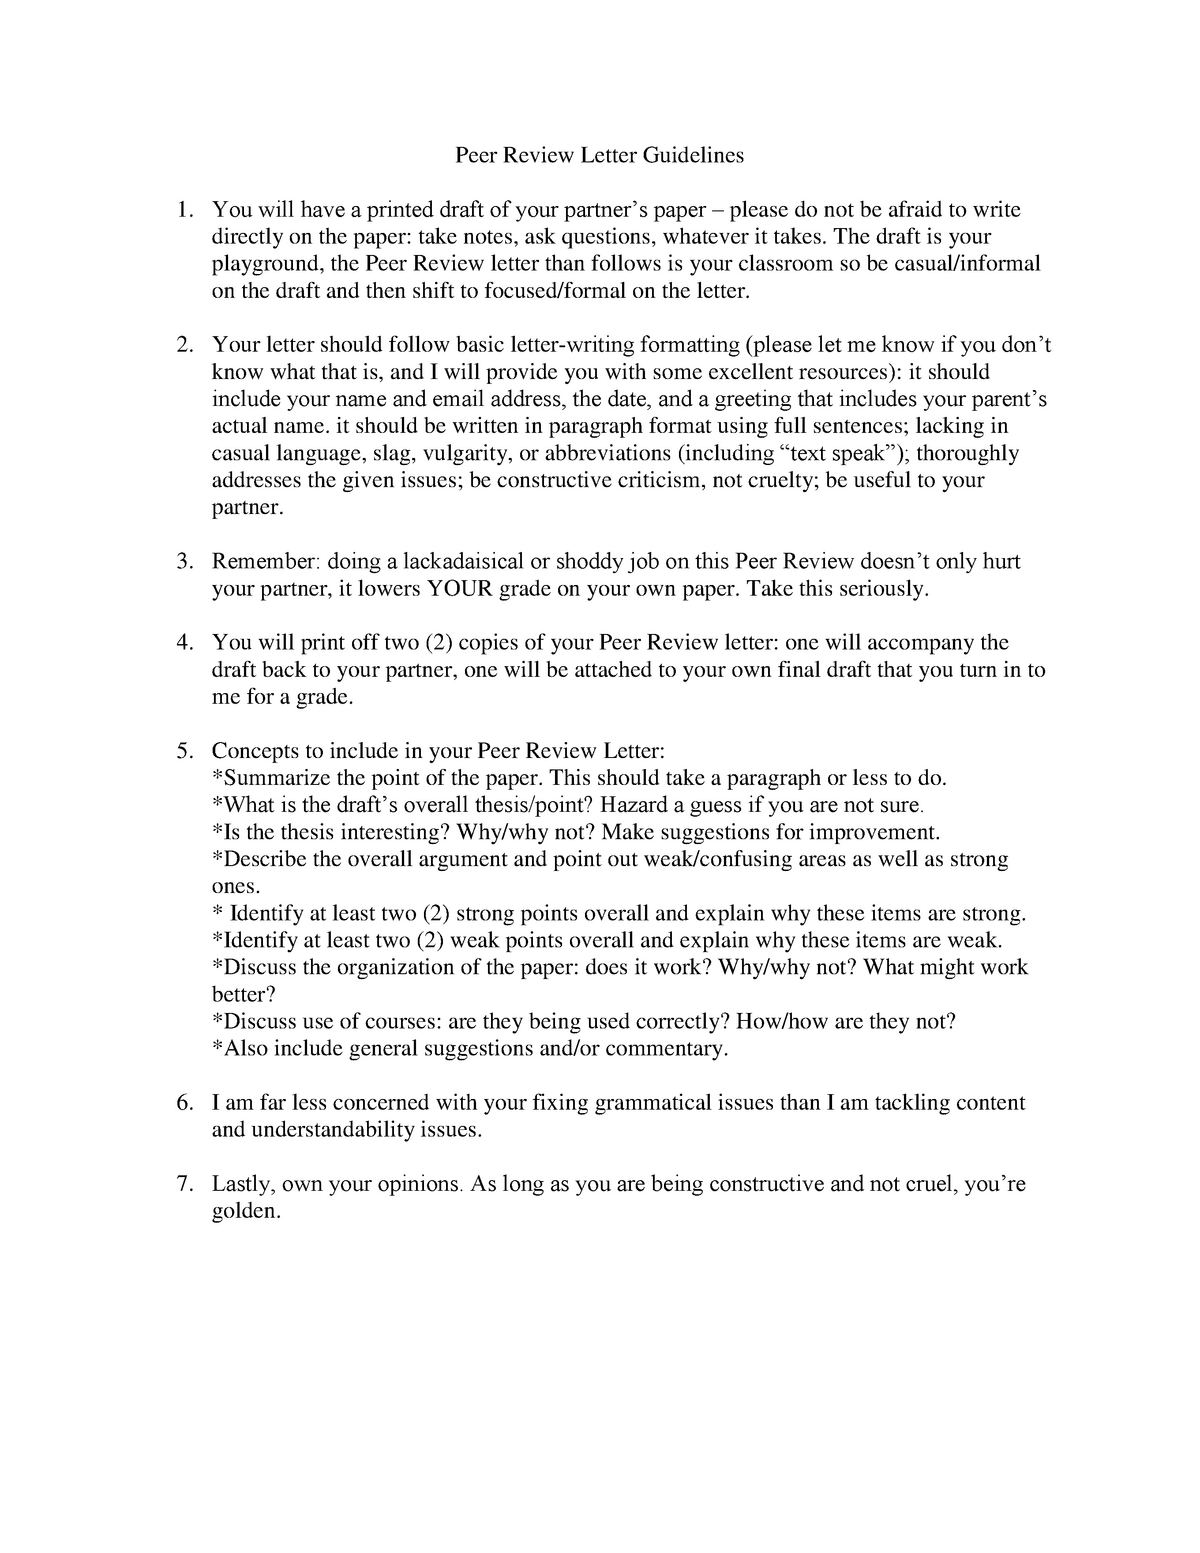 Peer Review Letter Guidlines - ENGL 102 Intermed Coll Writng